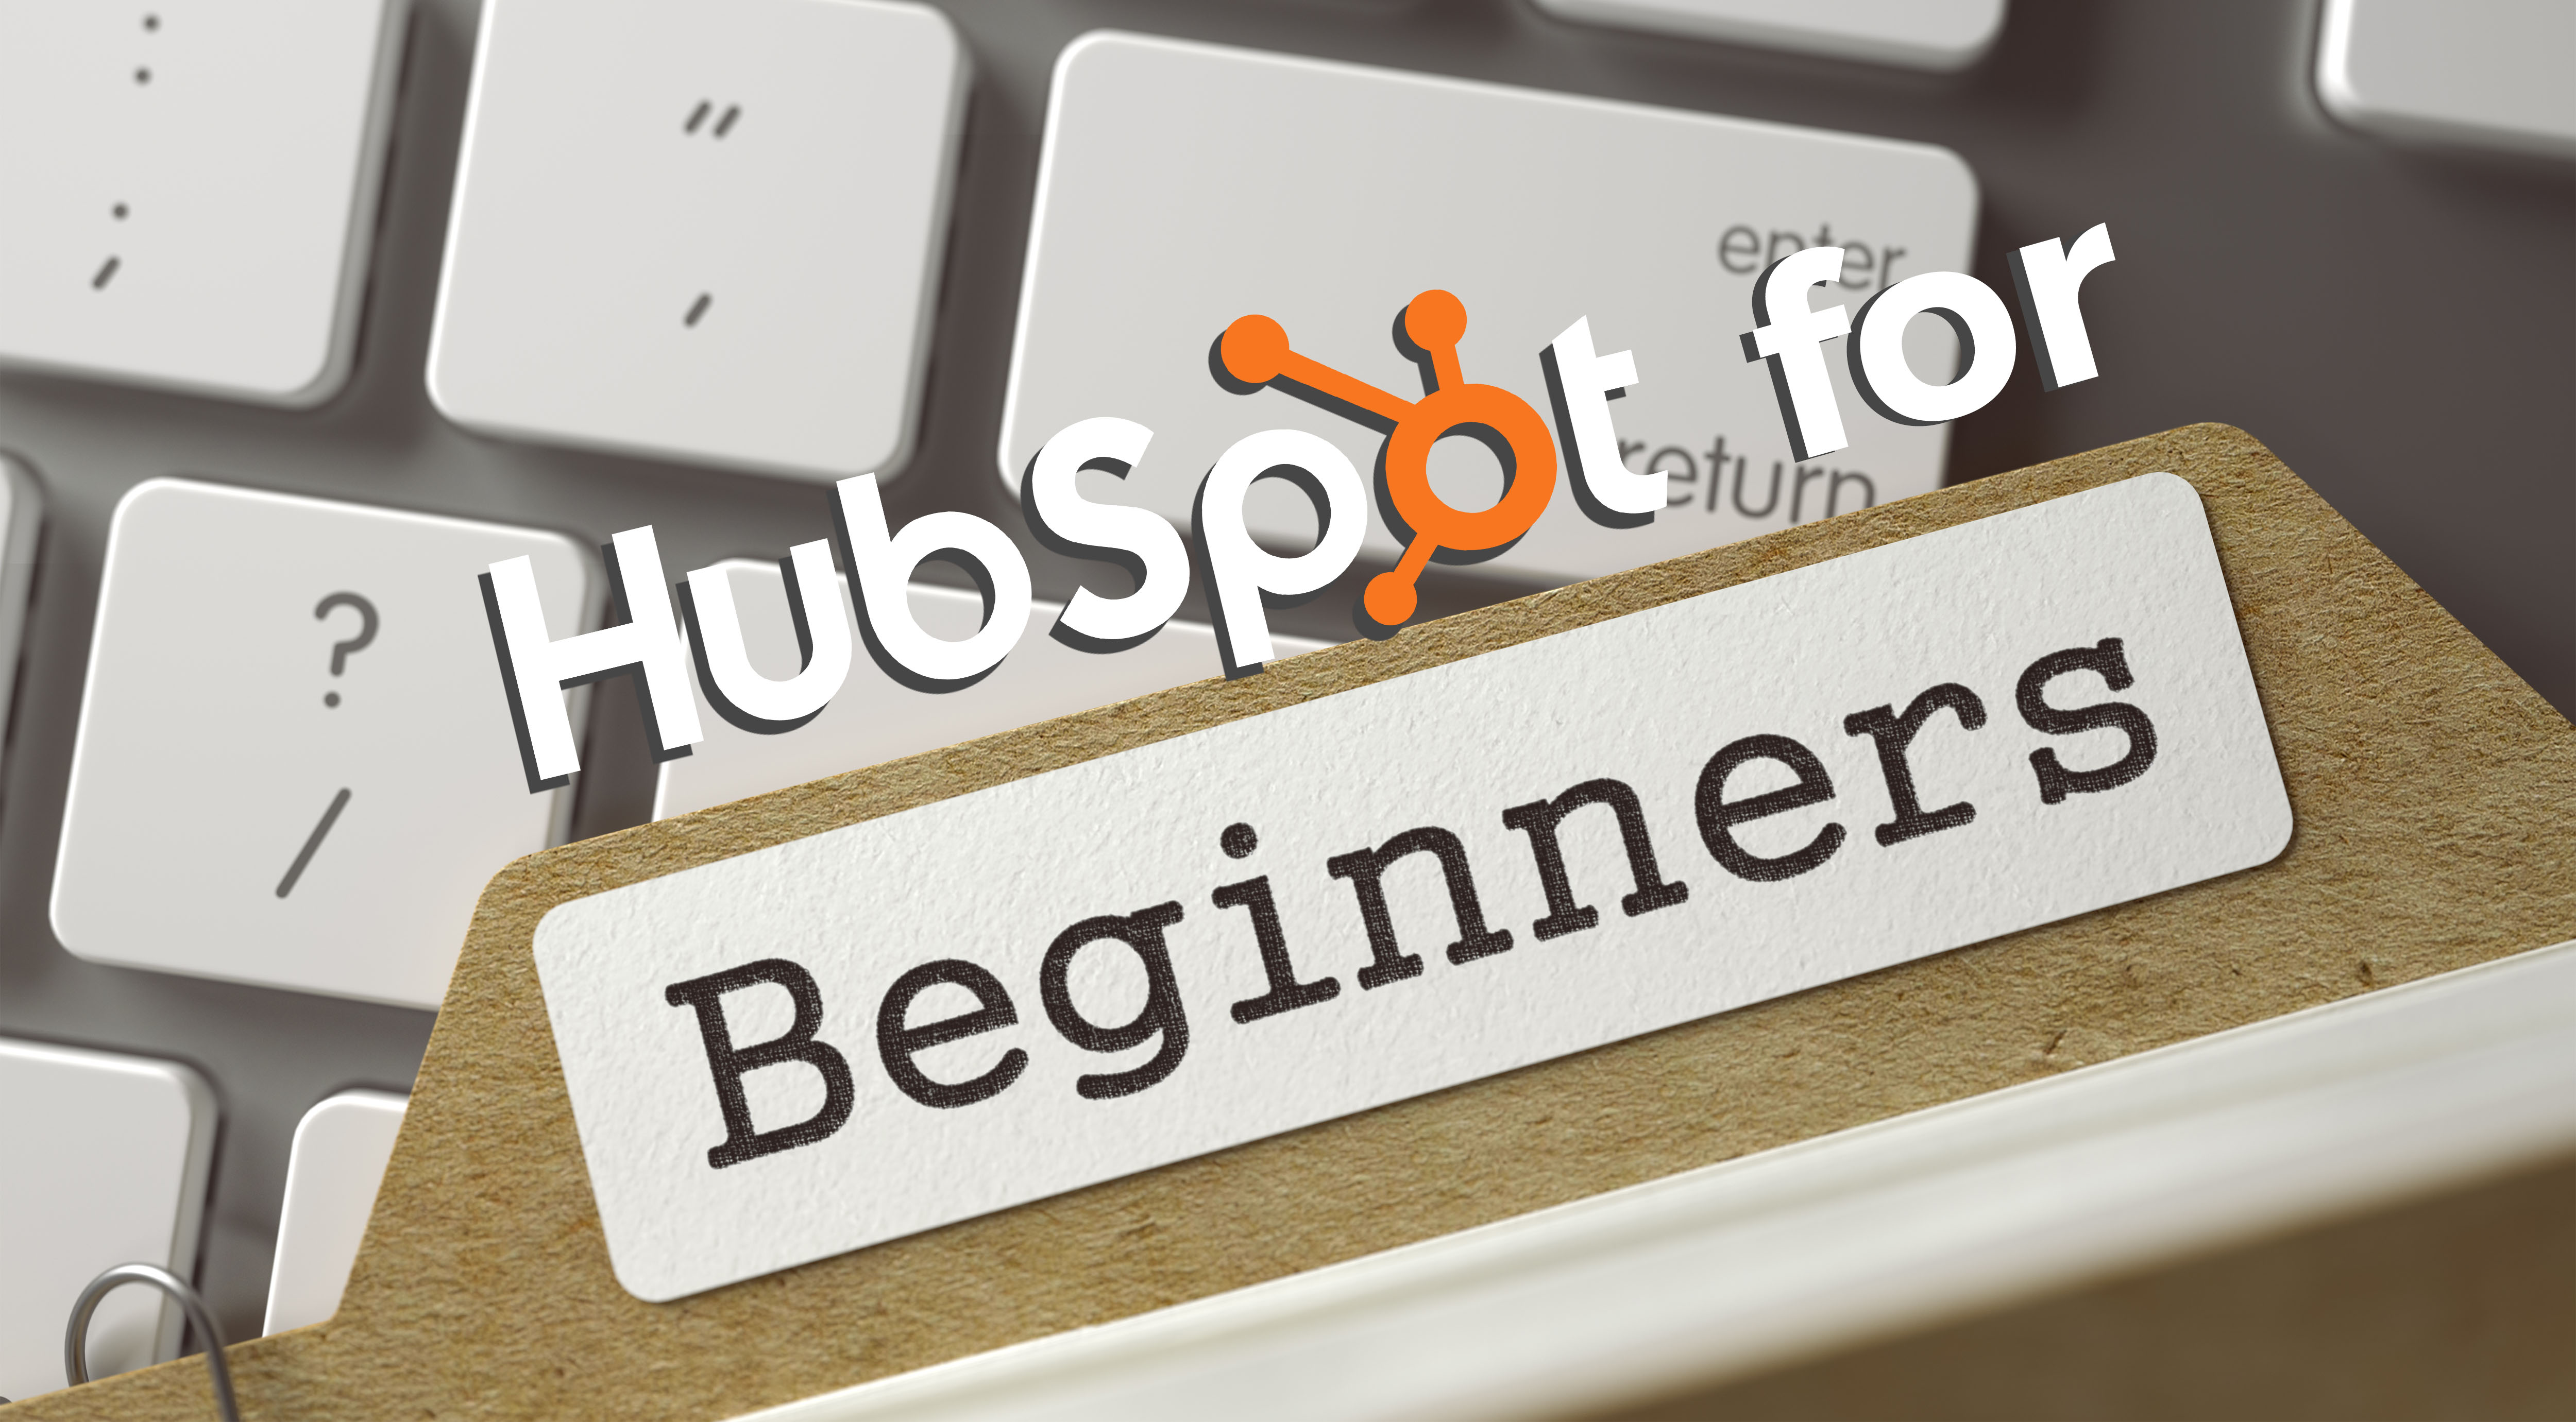 HubSpot for Beginners: Starting Your HubSpotting Journey